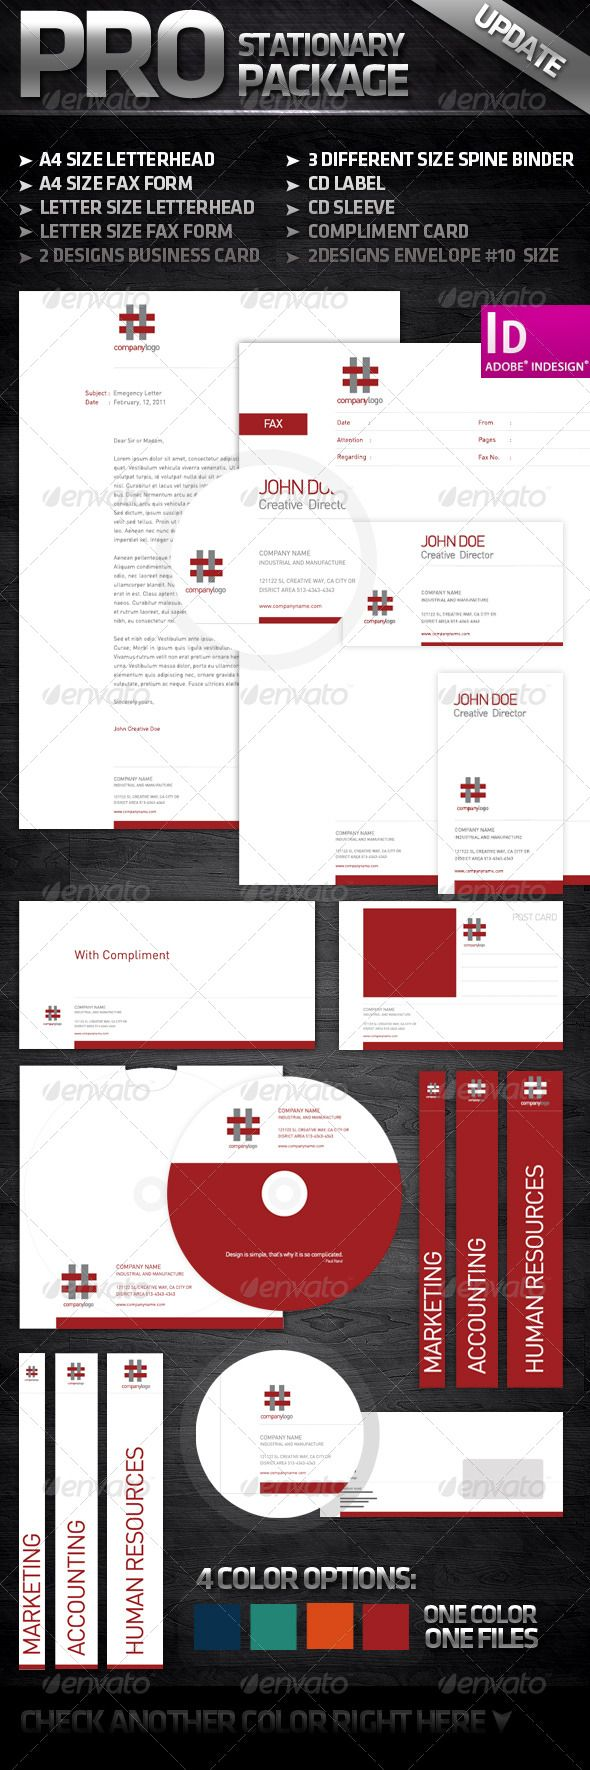 536 best corporate stationary images on pinterest corporate white and clean complete stationary print templatescard templatesform letterletter sizecorporate reheart Image collections